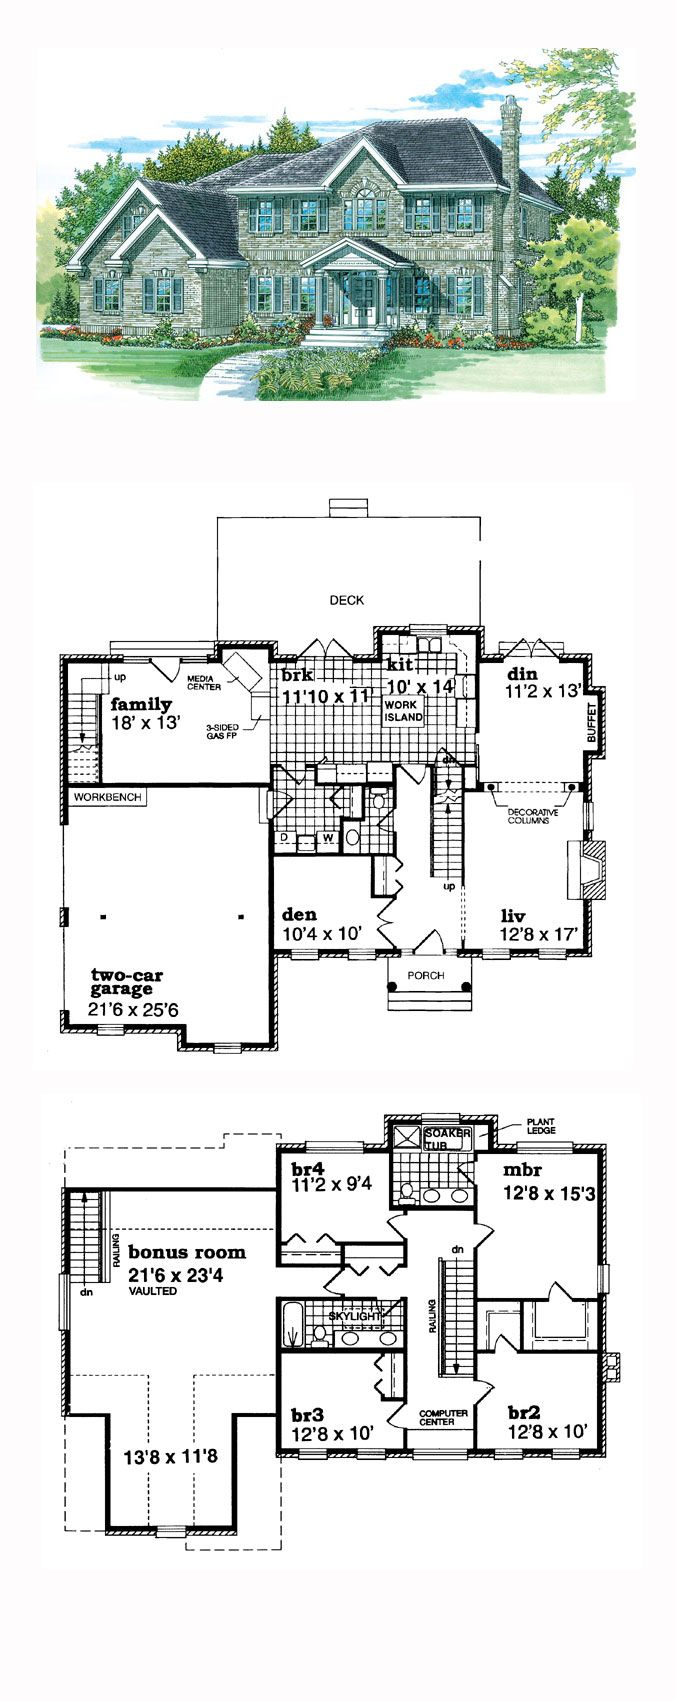 396 best homes images on pinterest house floor plans 396 best homes images on pinterest house floor plans architecture and dream houses